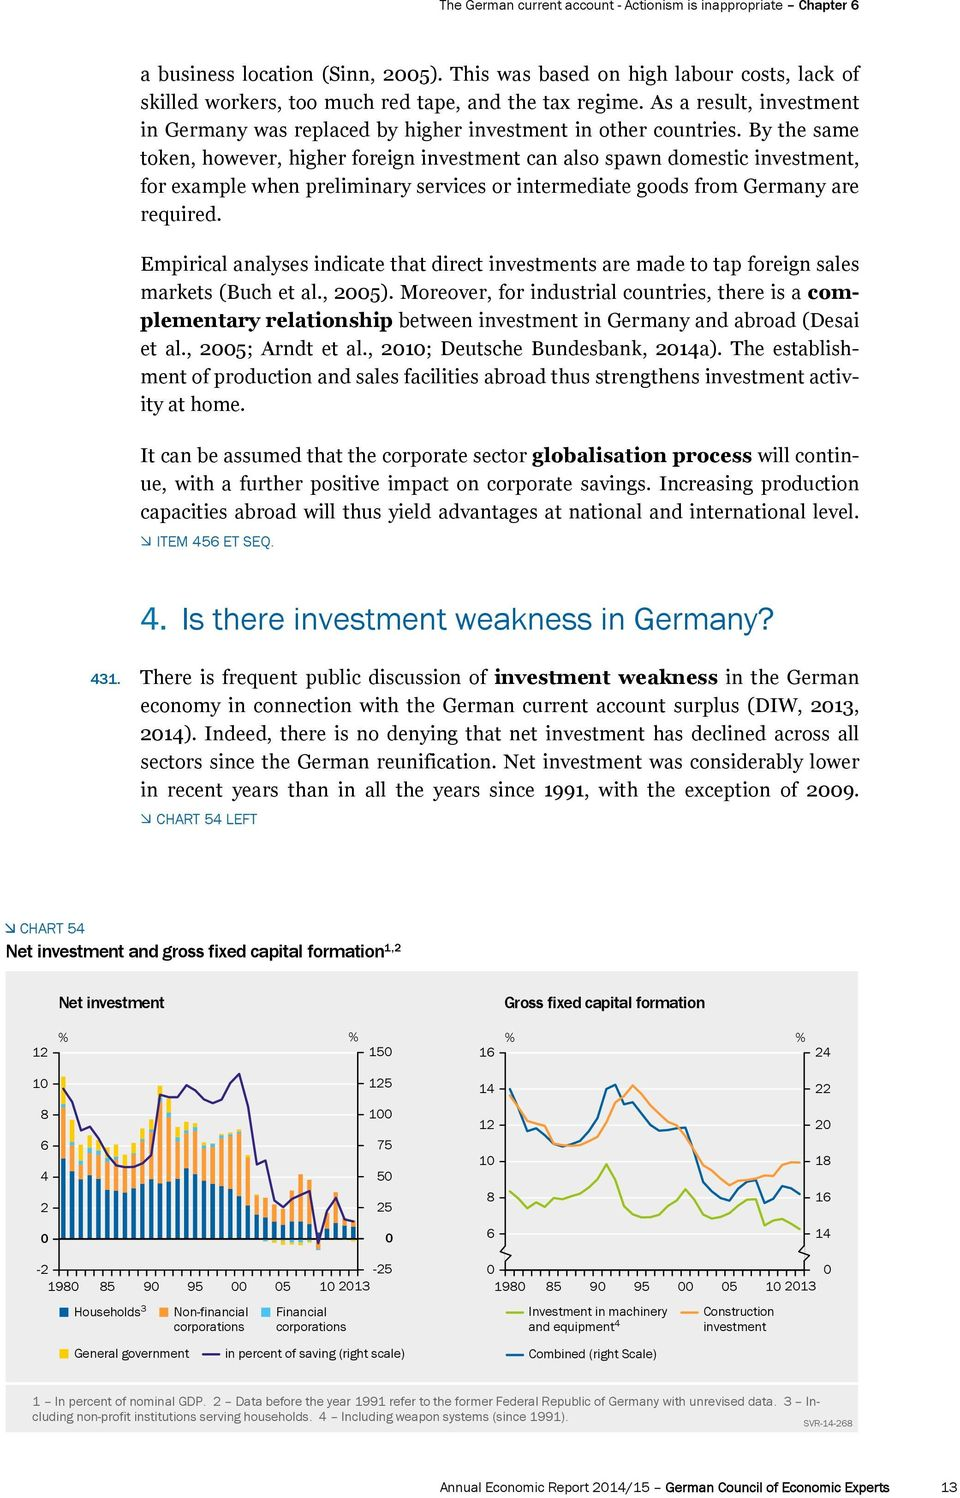 By the same token, however, higher foreign investment can also spawn domestic investment, for example when preliminary services or intermediate goods from Germany are required.